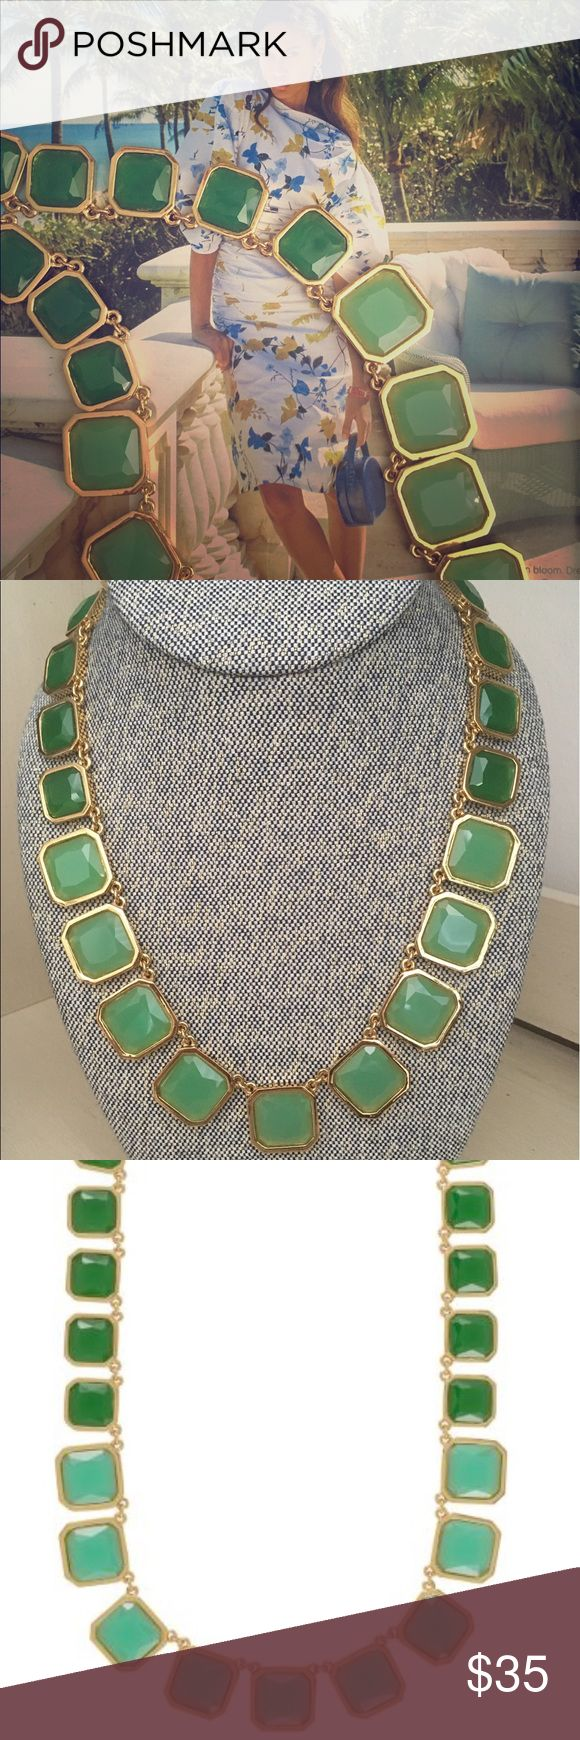 """Kate Spade Frame of Mind graduated necklace 14k yellow gold plated . 19""""L/4""""extender . Glossy enamel green/sea foam . Summer -Perfect for wearing with whites and nude clothing for extra statement . In winter - pair it up with darker tones for more drama to the outfit . Gently worn only 3 times . Feel free to make me an offer :) kate spade Jewelry Necklaces"""